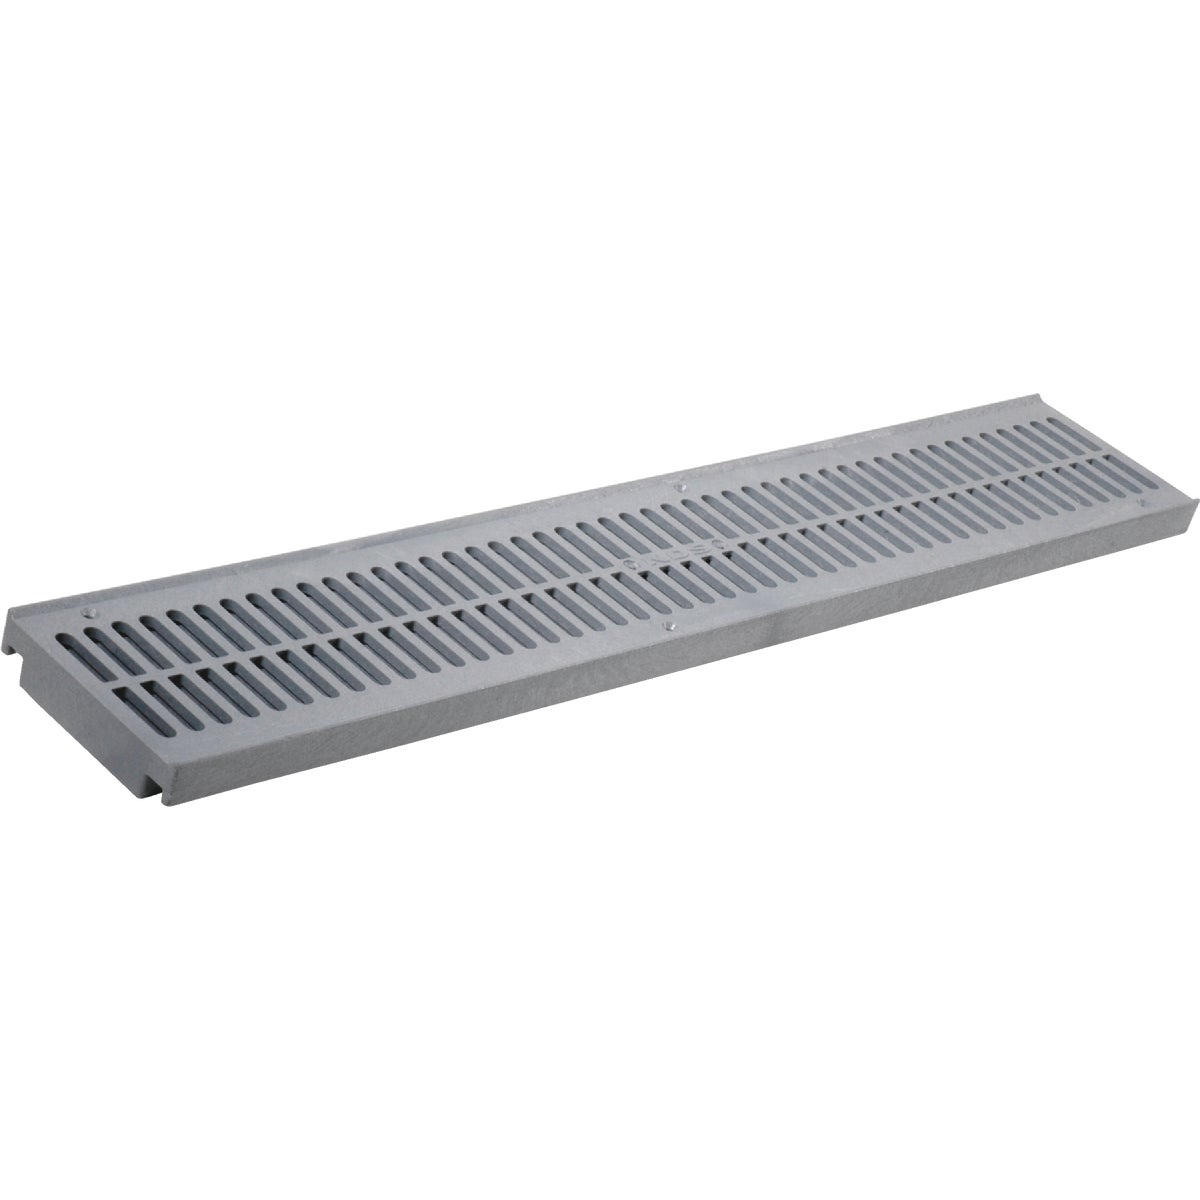 2' CHANNEL GRATE - 241-1 by National Diversified